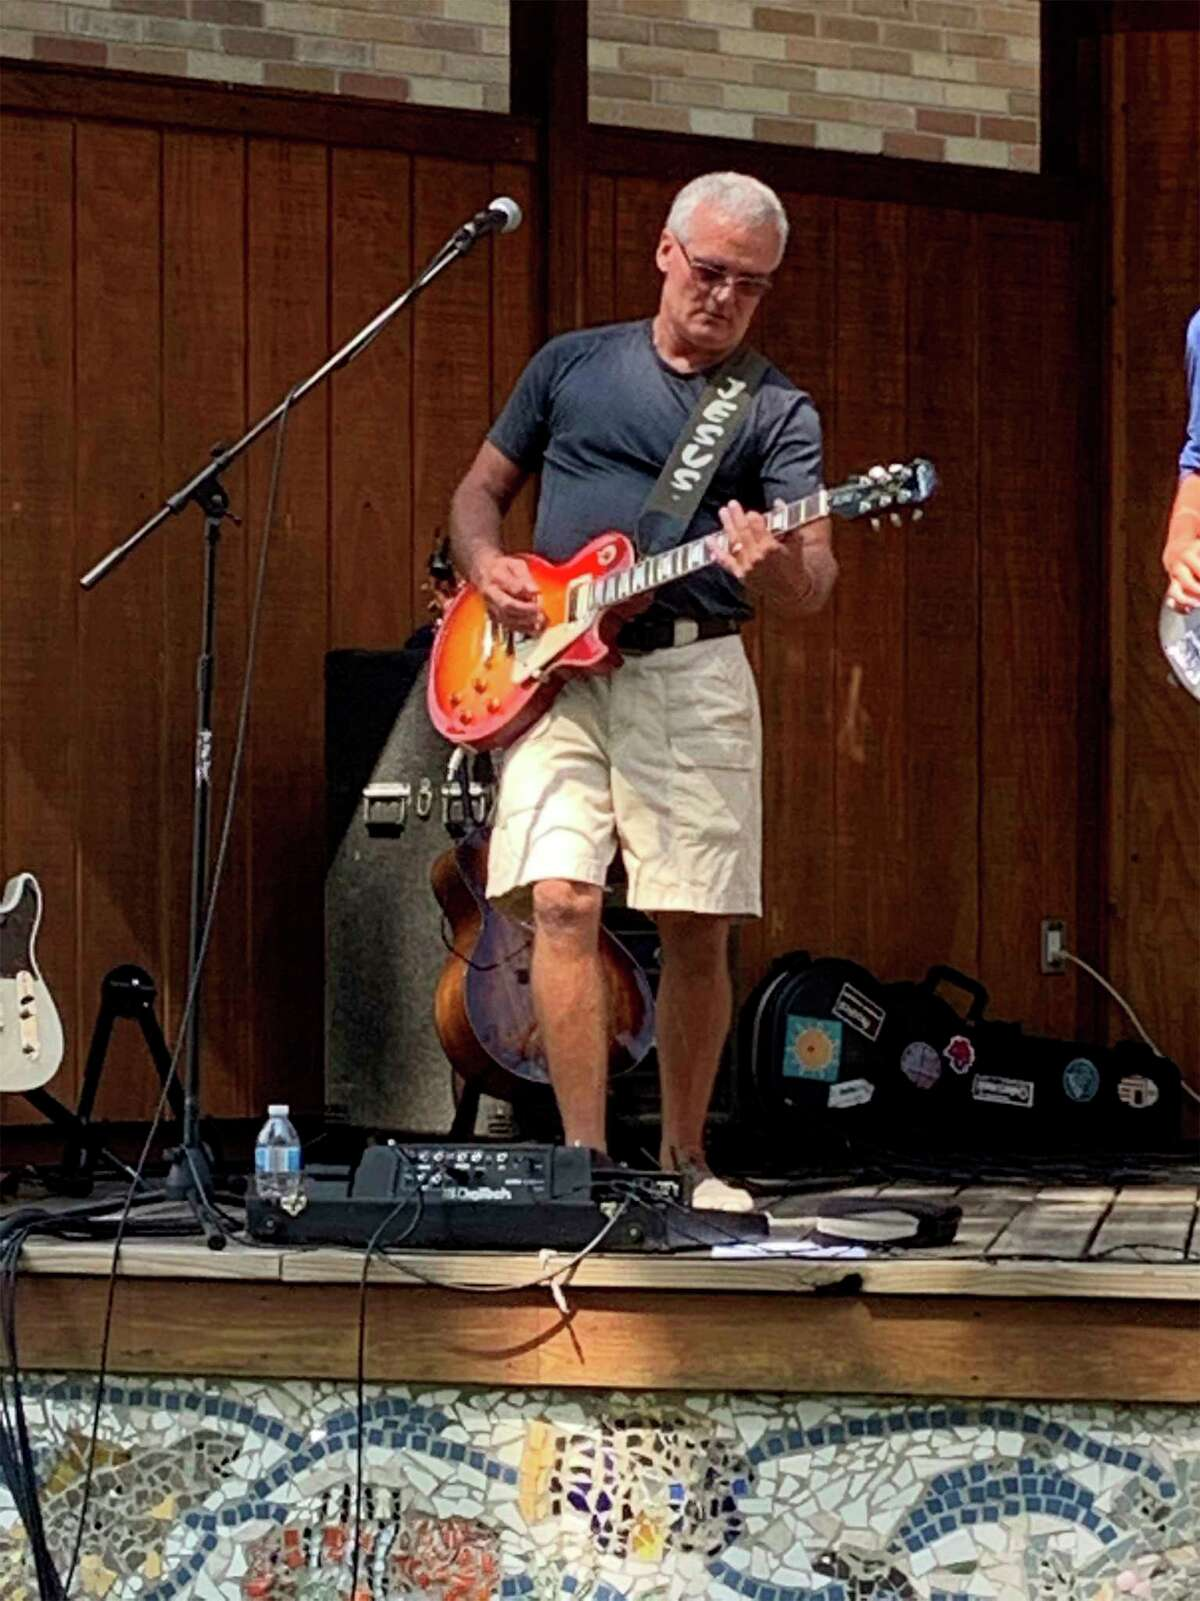 Dave Yonker, of the DaveYonkerBand, plays a solo during a concertAug. 23 at Brooks Park in Newaygo. (Pioneer photo/Julie Norwood)